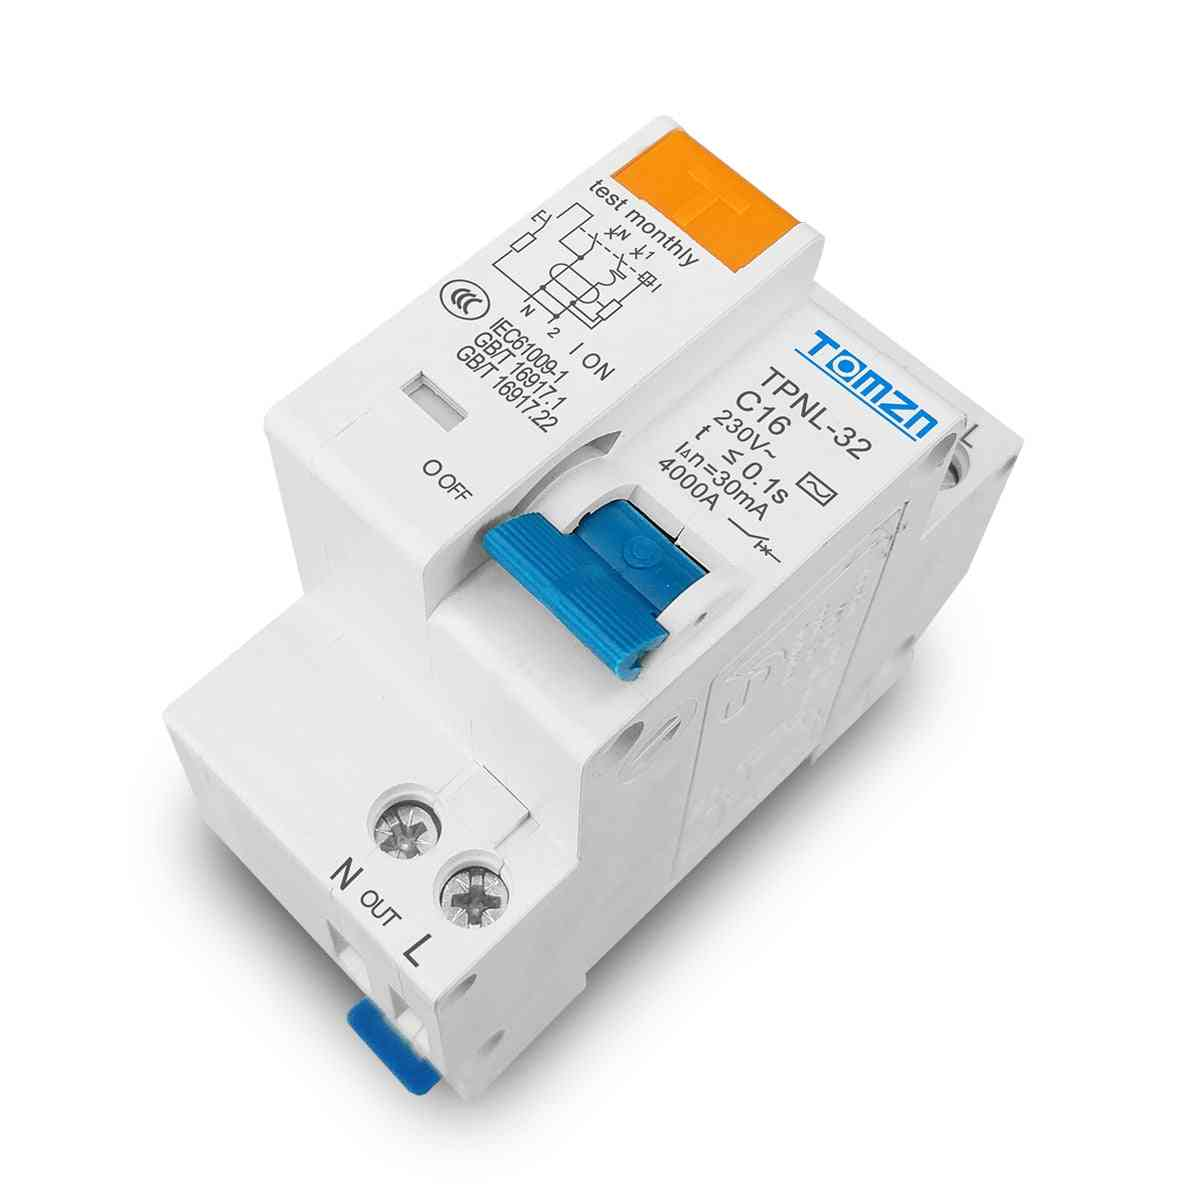 Residual Current Circuit Breaker With Over And Short Current Leakage Protection